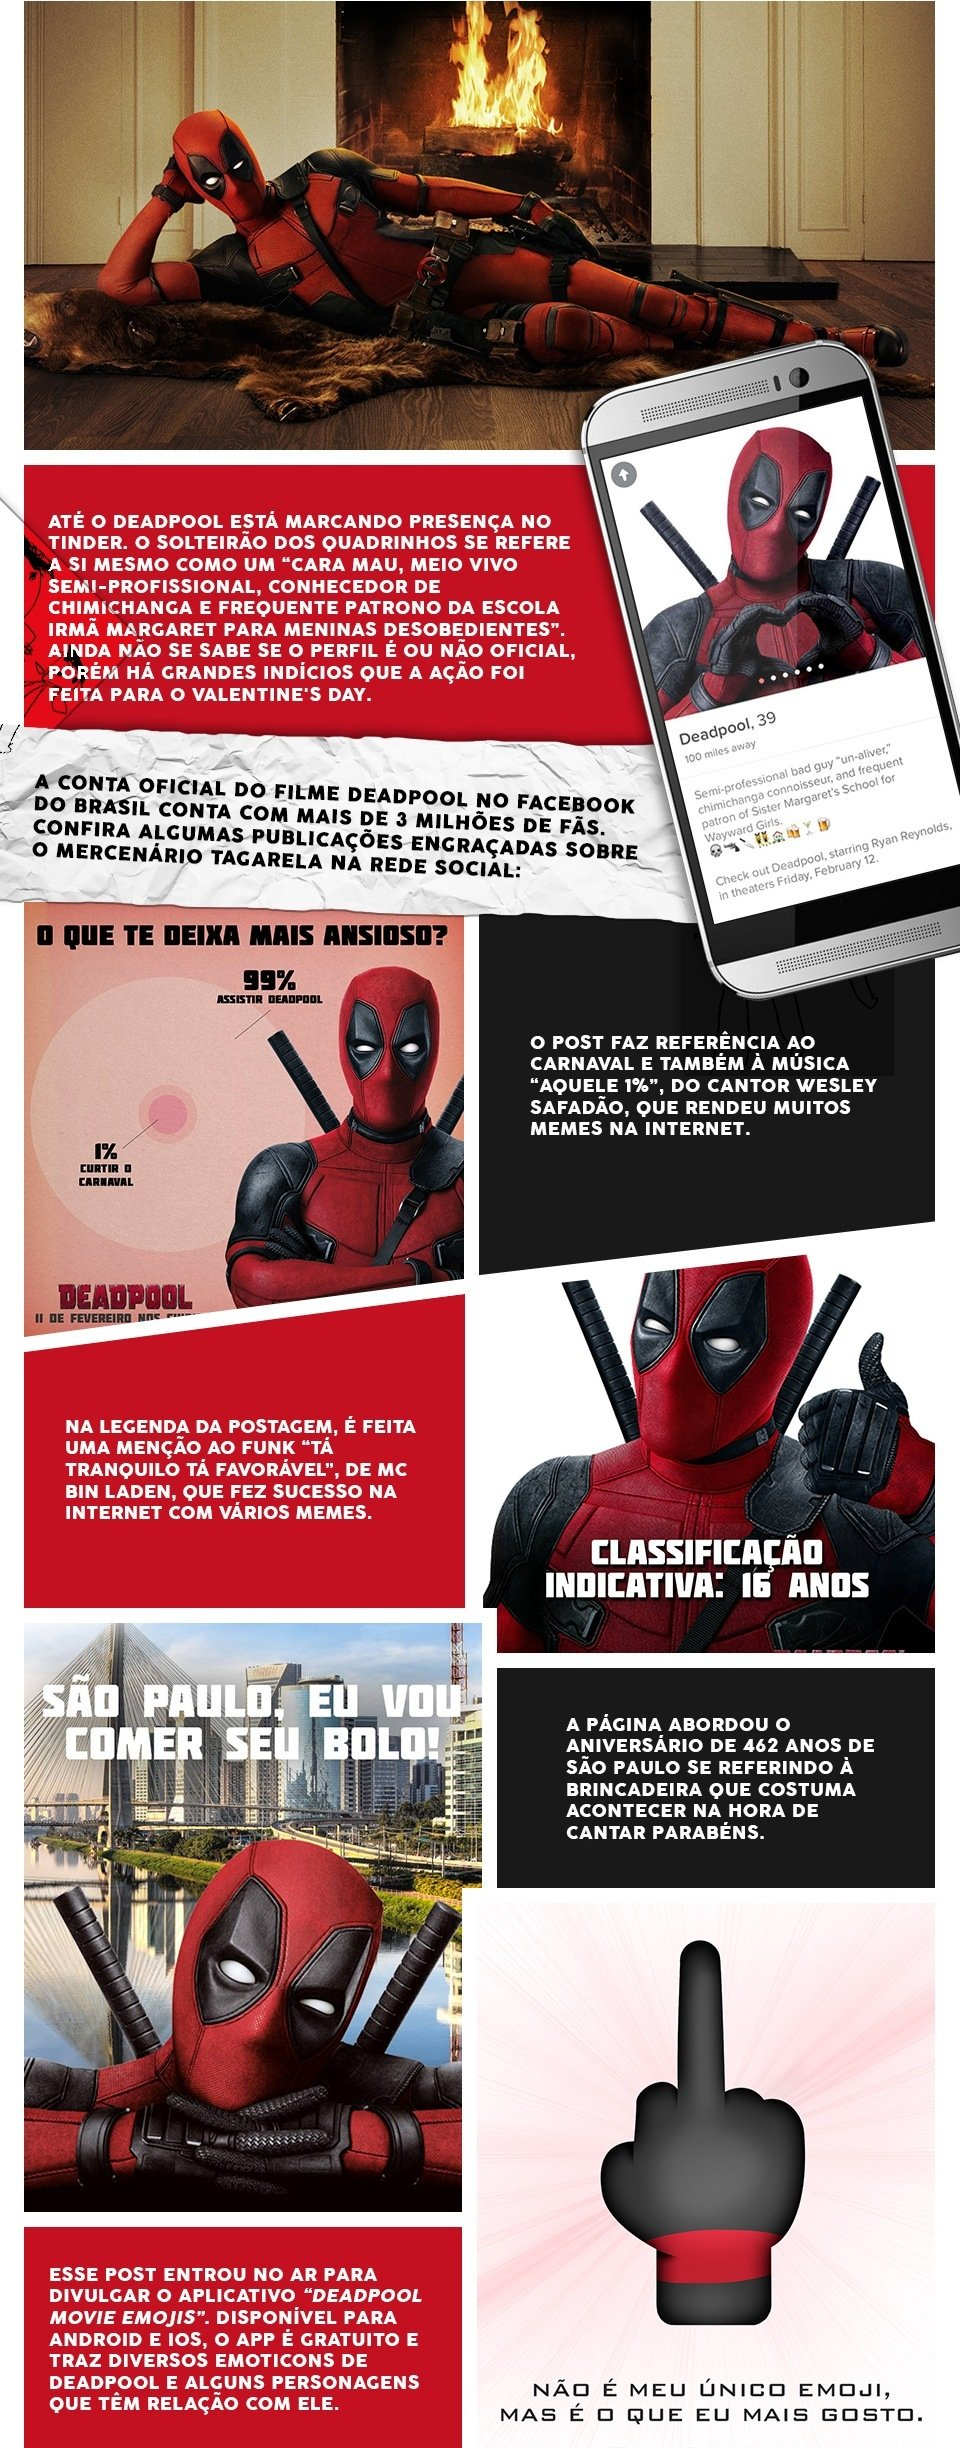 Deadpool e a estratégia de marketing digital-02